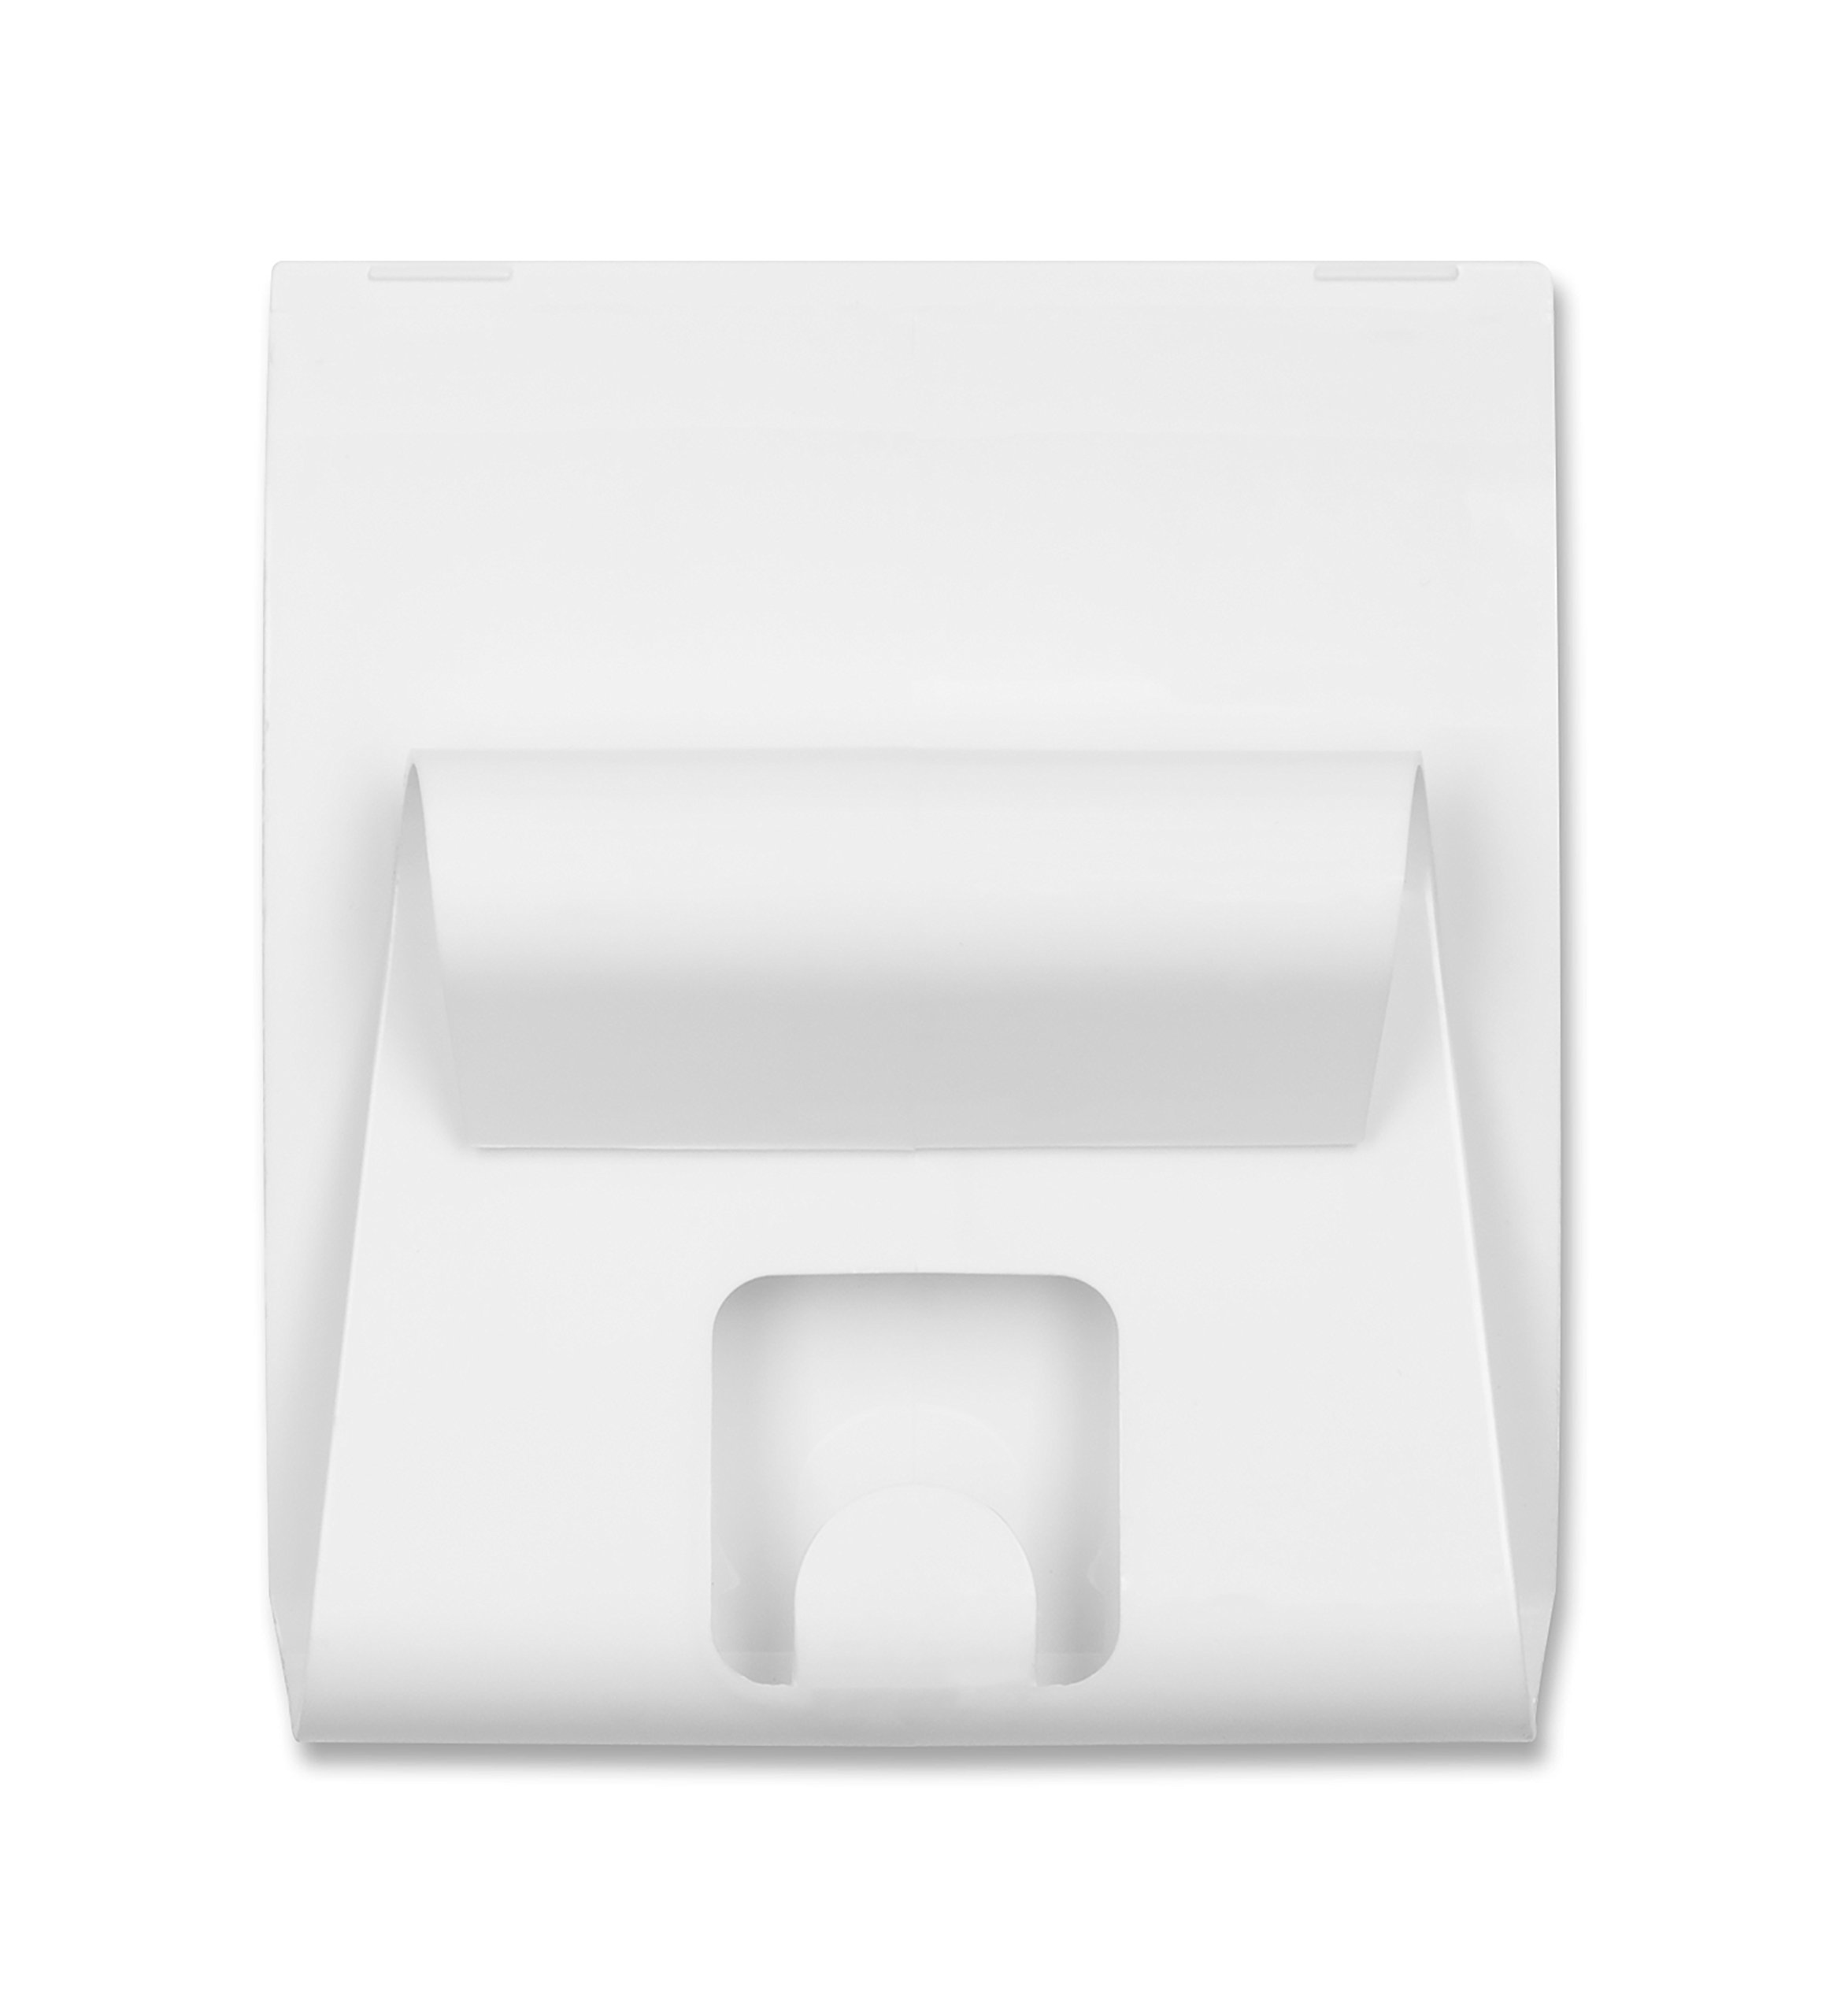 U Brands Gruv Magnetic Mail Holder with Key Hook, White, 3.5 x 3.25 Inches by U Brands (Image #2)